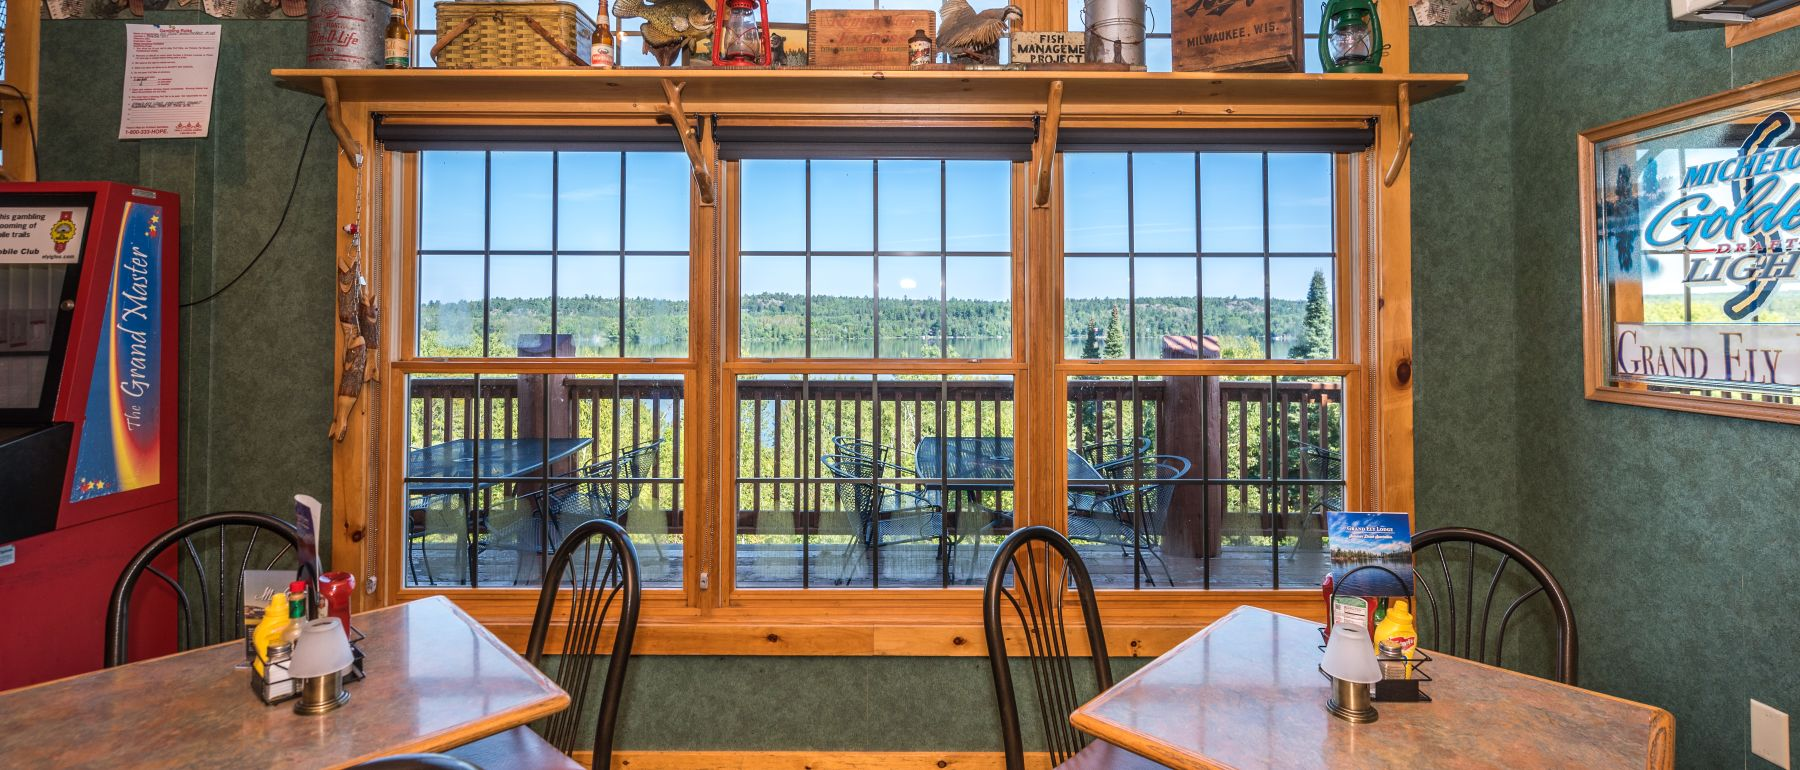 Ample Seating at Evergreen Restaurant at Grand Ely Lodge